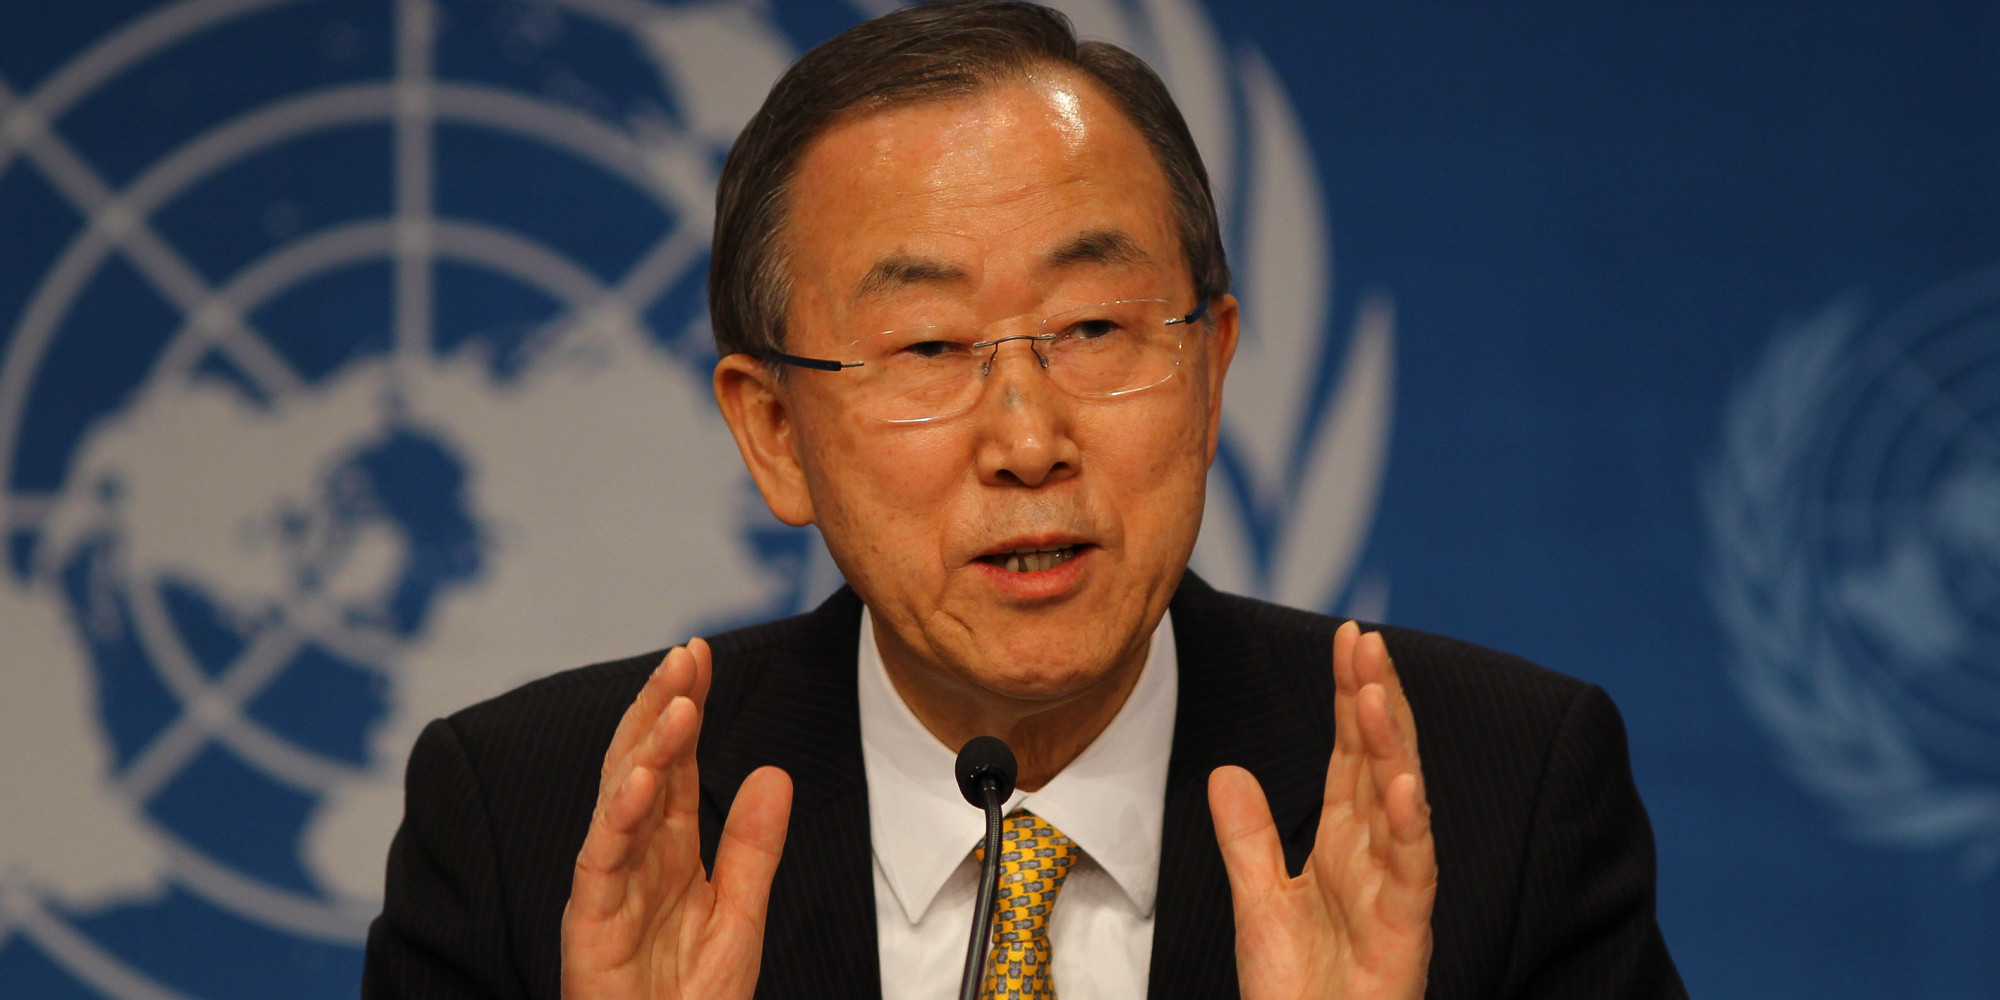 Statement by the UN Sec Gen on the outcome of the 3rd International Conference on Financing for Development